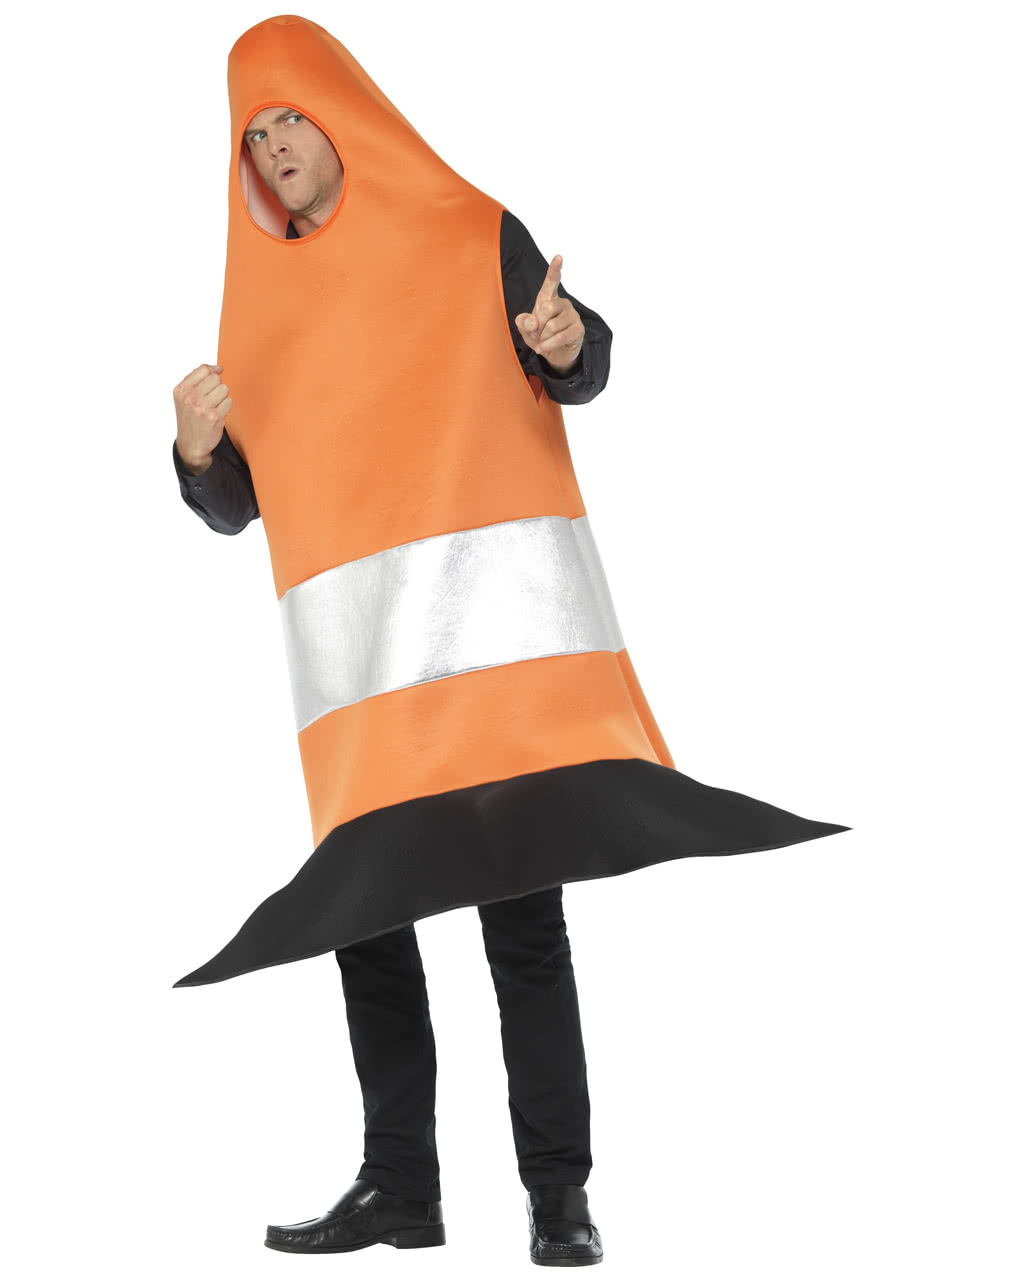 how to make traffic signal costume